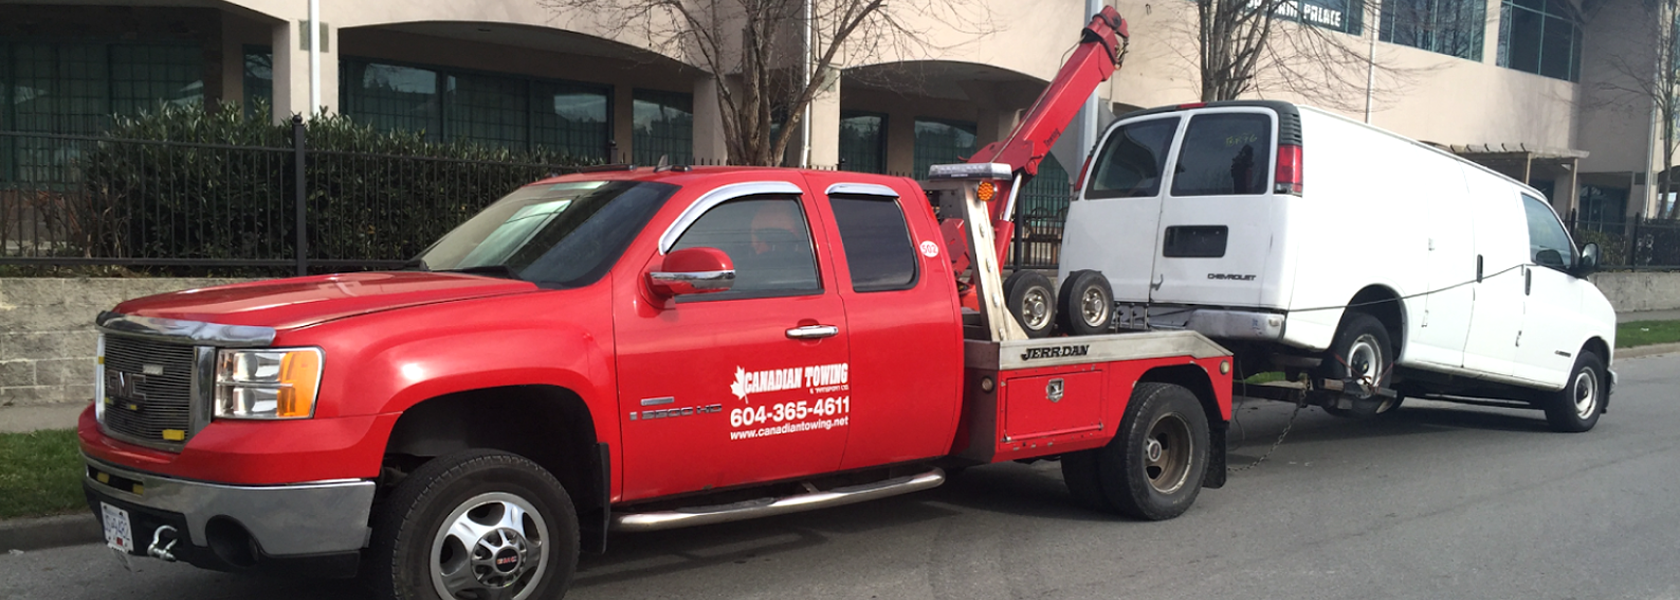 Your Complete Guide to Towing